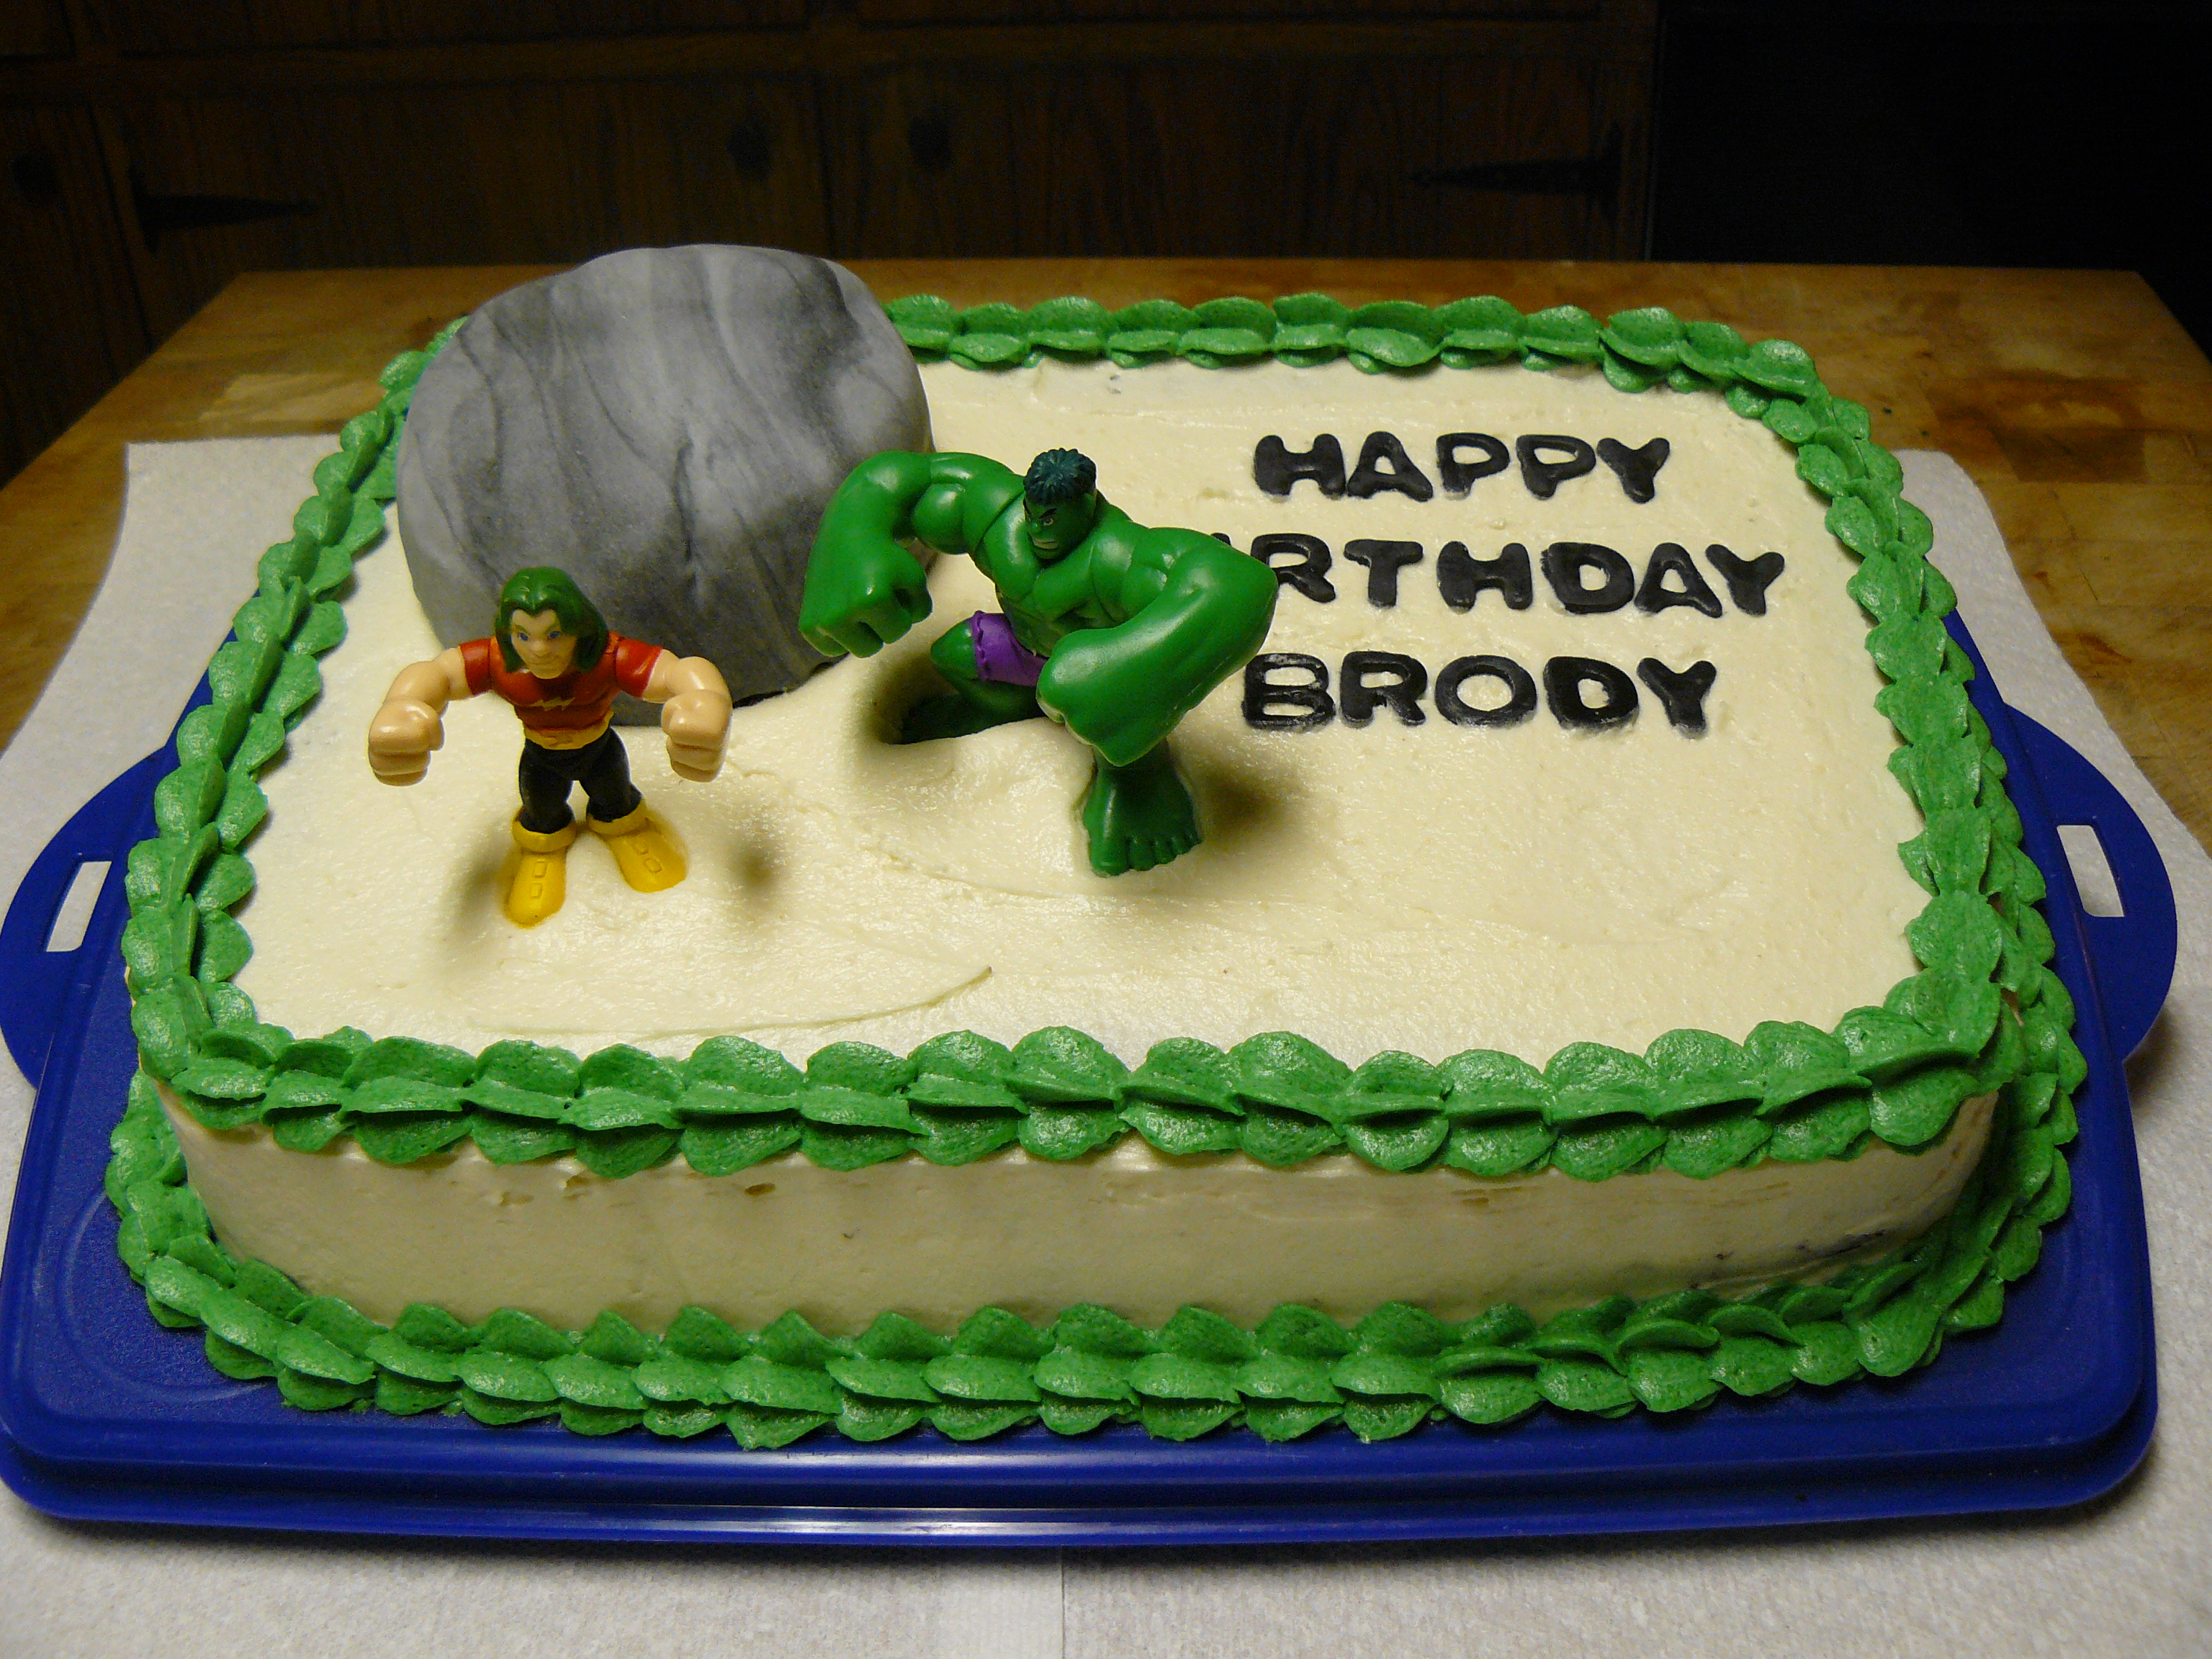 Hulk cakes decoration ideas little birthday cakes pictures of hulk cakes pronofoot35fo Choice Image